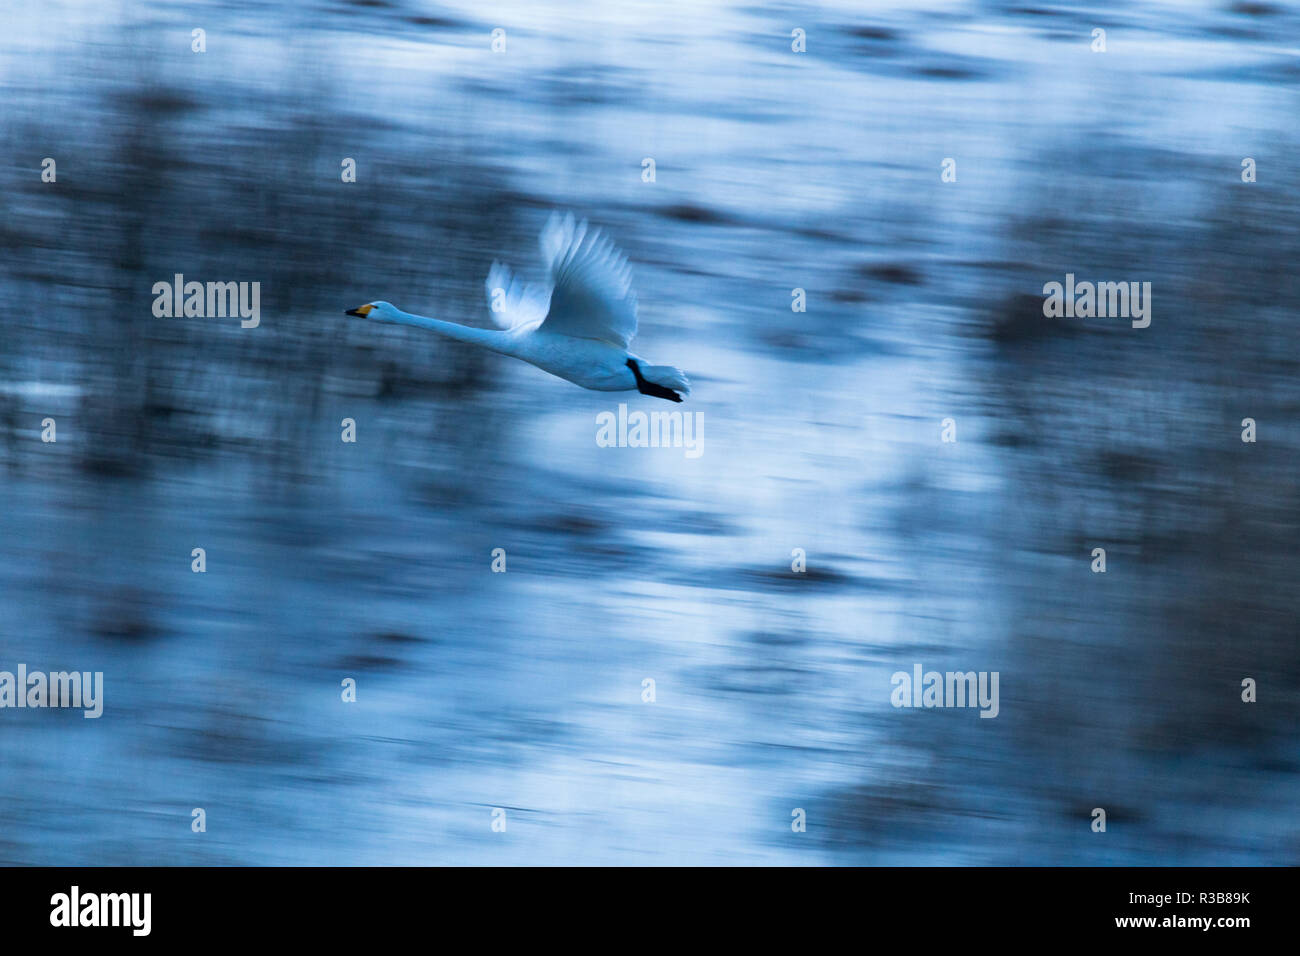 Whooper swan (Cygnus cygnus) in flight, motion blur, province Örebro län, Sweden Stock Photo